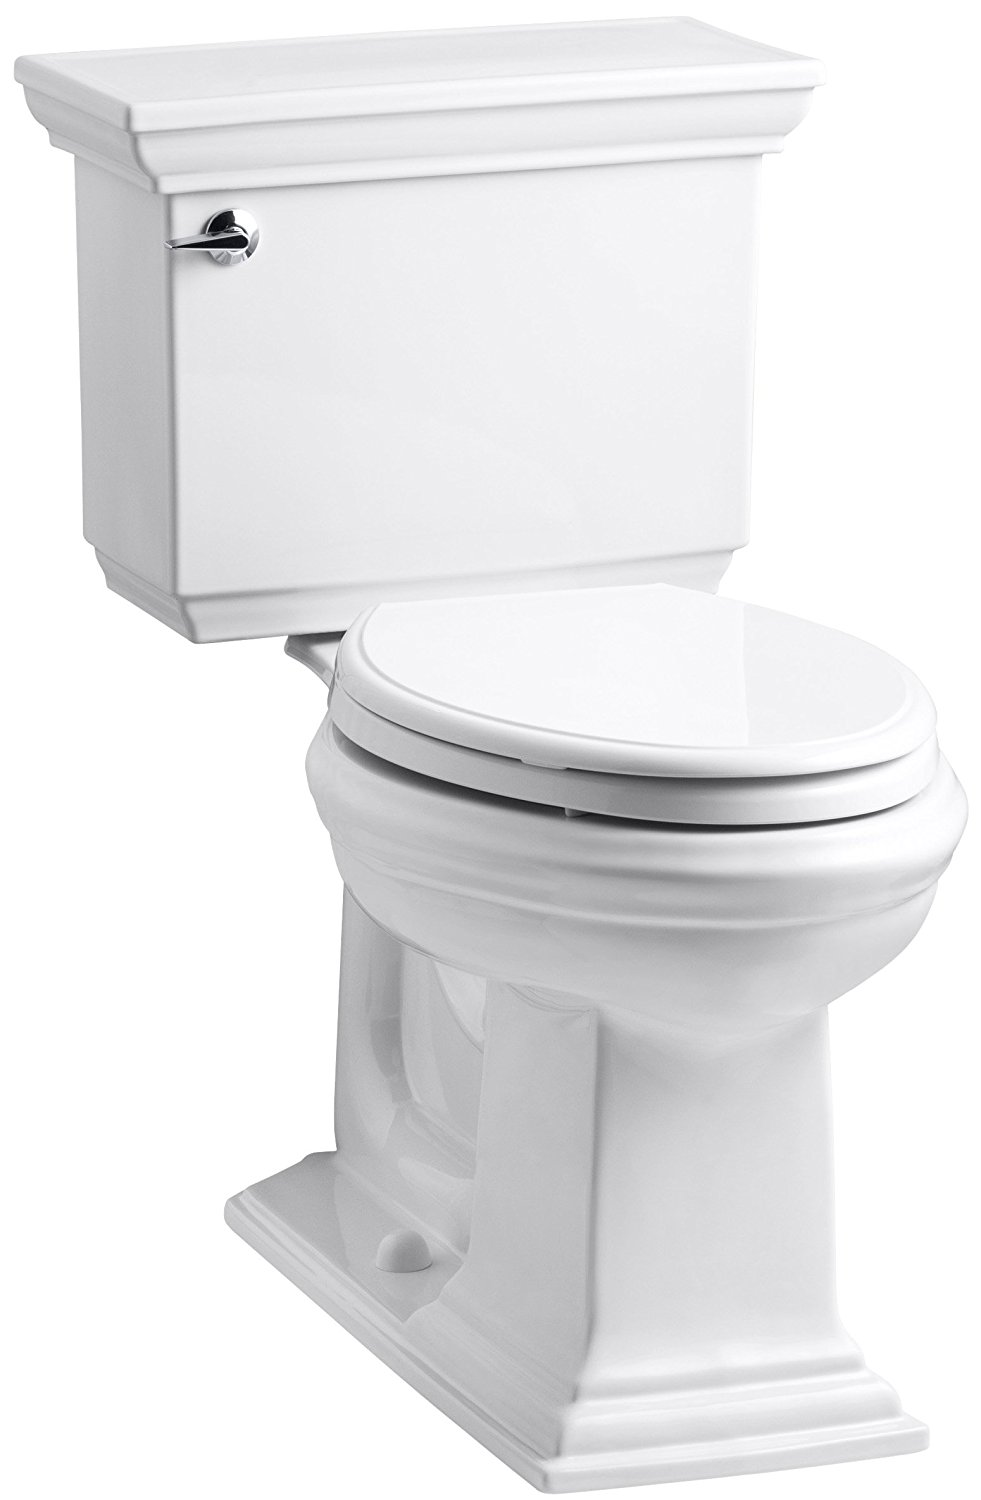 KOHLER K-3817-0 Memoirs Stately Comfort Height Two-Piece Elongated 1.28 GPF Toilet with AquaPiston Flush Technology and Left-Hand Trip Lever, White